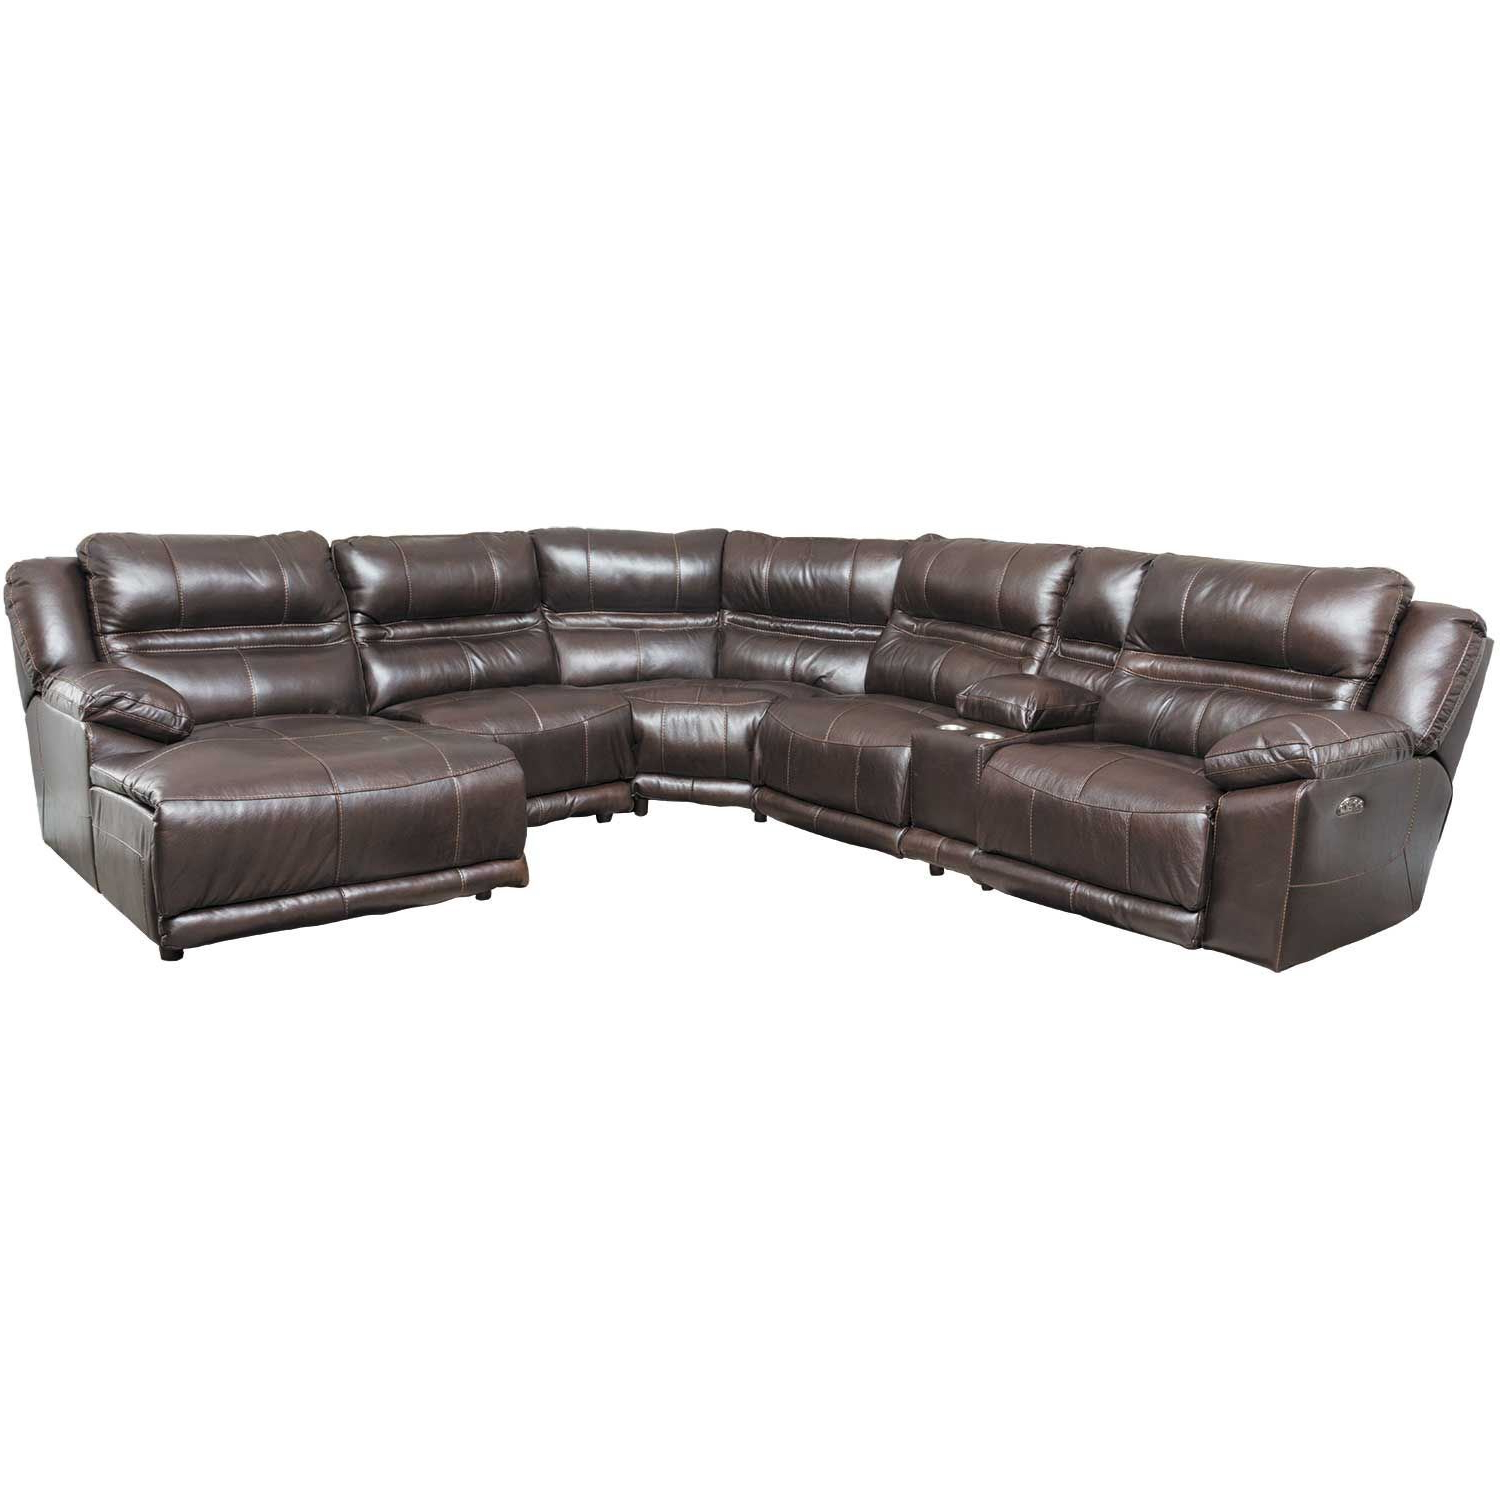 Trendy Bergamo 6 Piece Power Reclining Sectional With Adjustable Headrest Inside Jackson 6 Piece Power Reclining Sectionals (View 2 of 20)